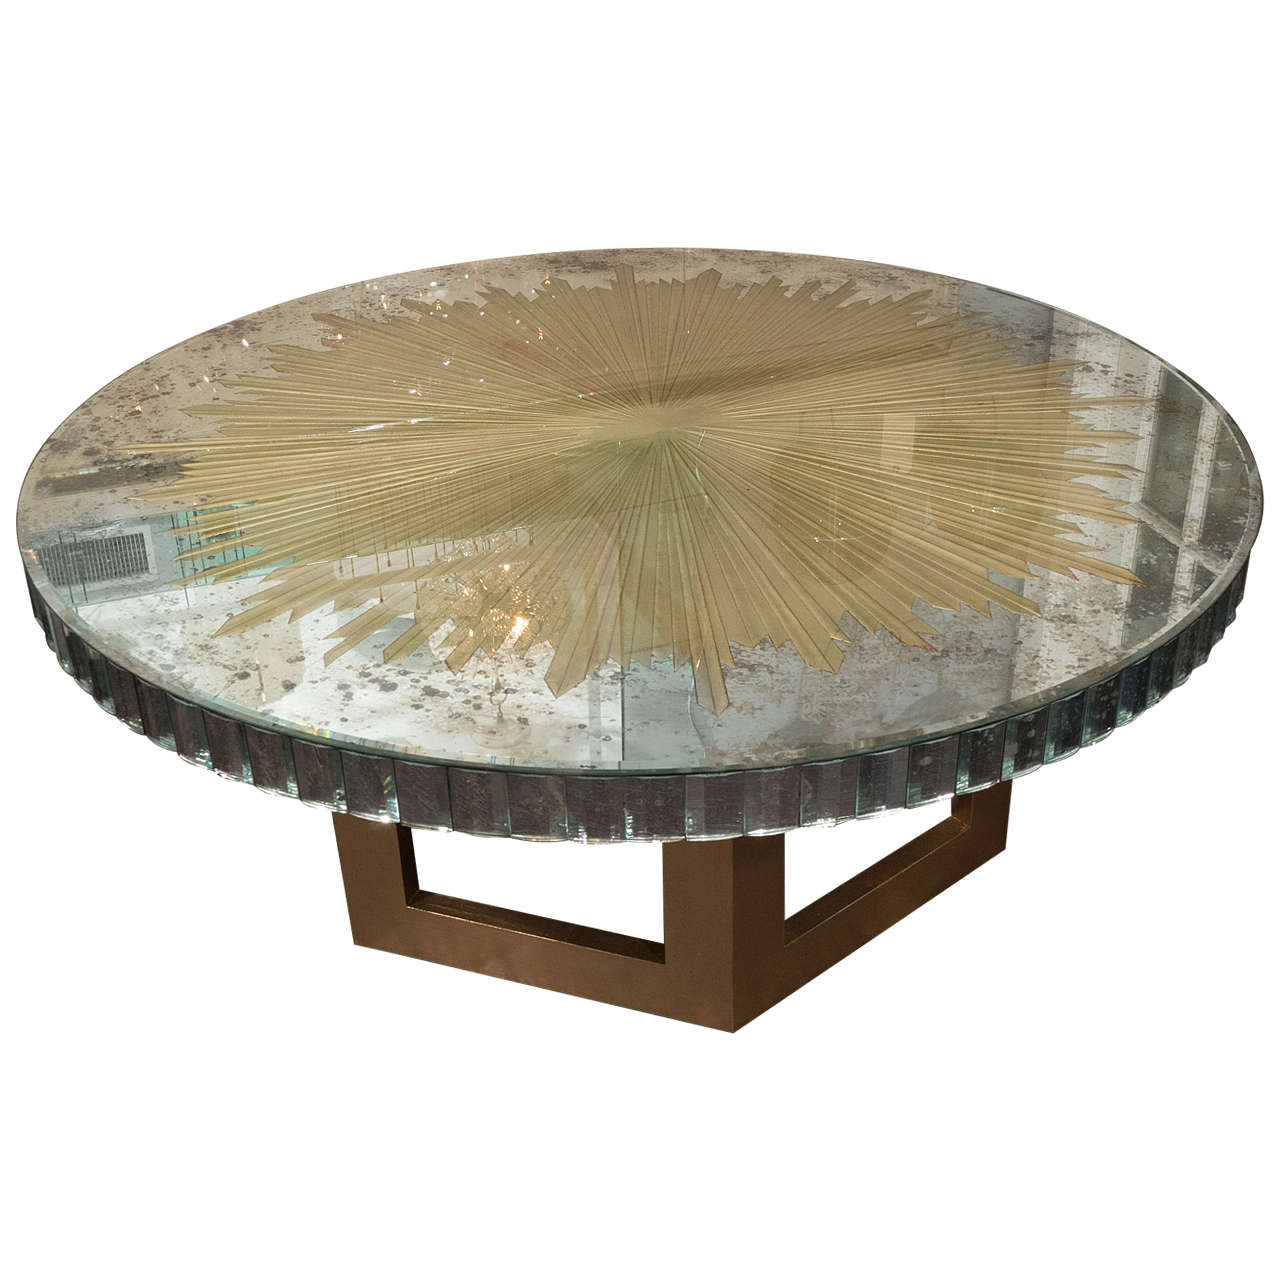 Vintage églomisé Mirrored Glass Table with Gold Leafed Base at 1stdibs